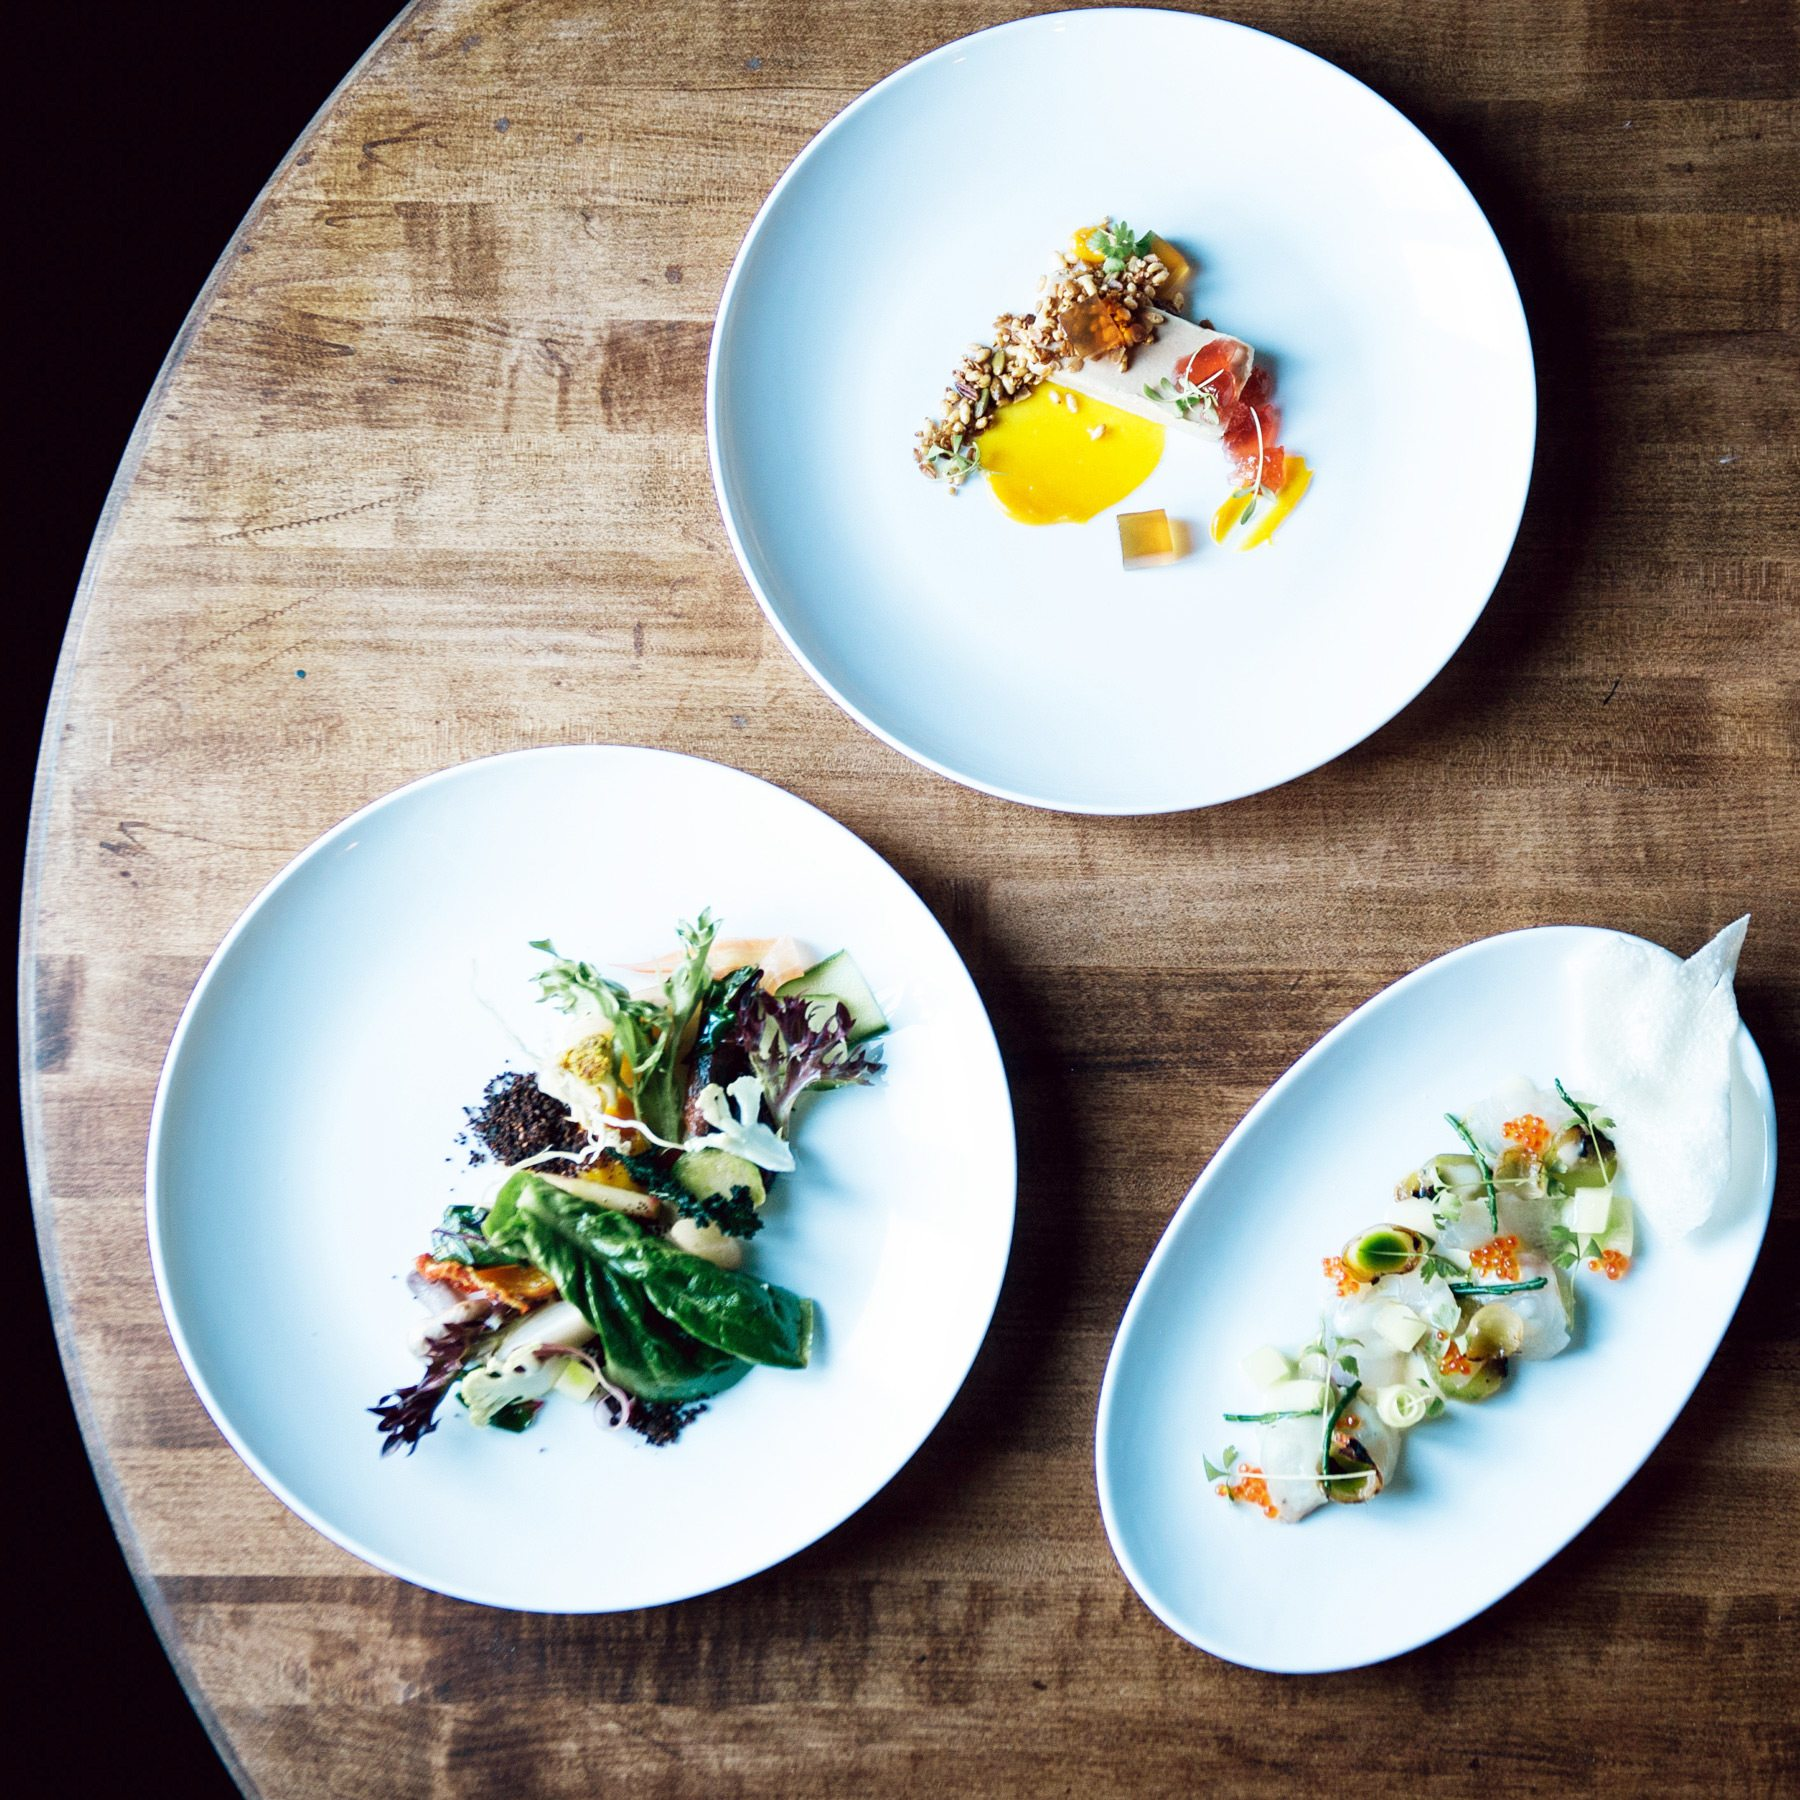 A selection of dishes from the menu includes foie gras, an inventive winter salad, and sea bream crudo. Photo: Frazer Nagy of Transparent Kitchen